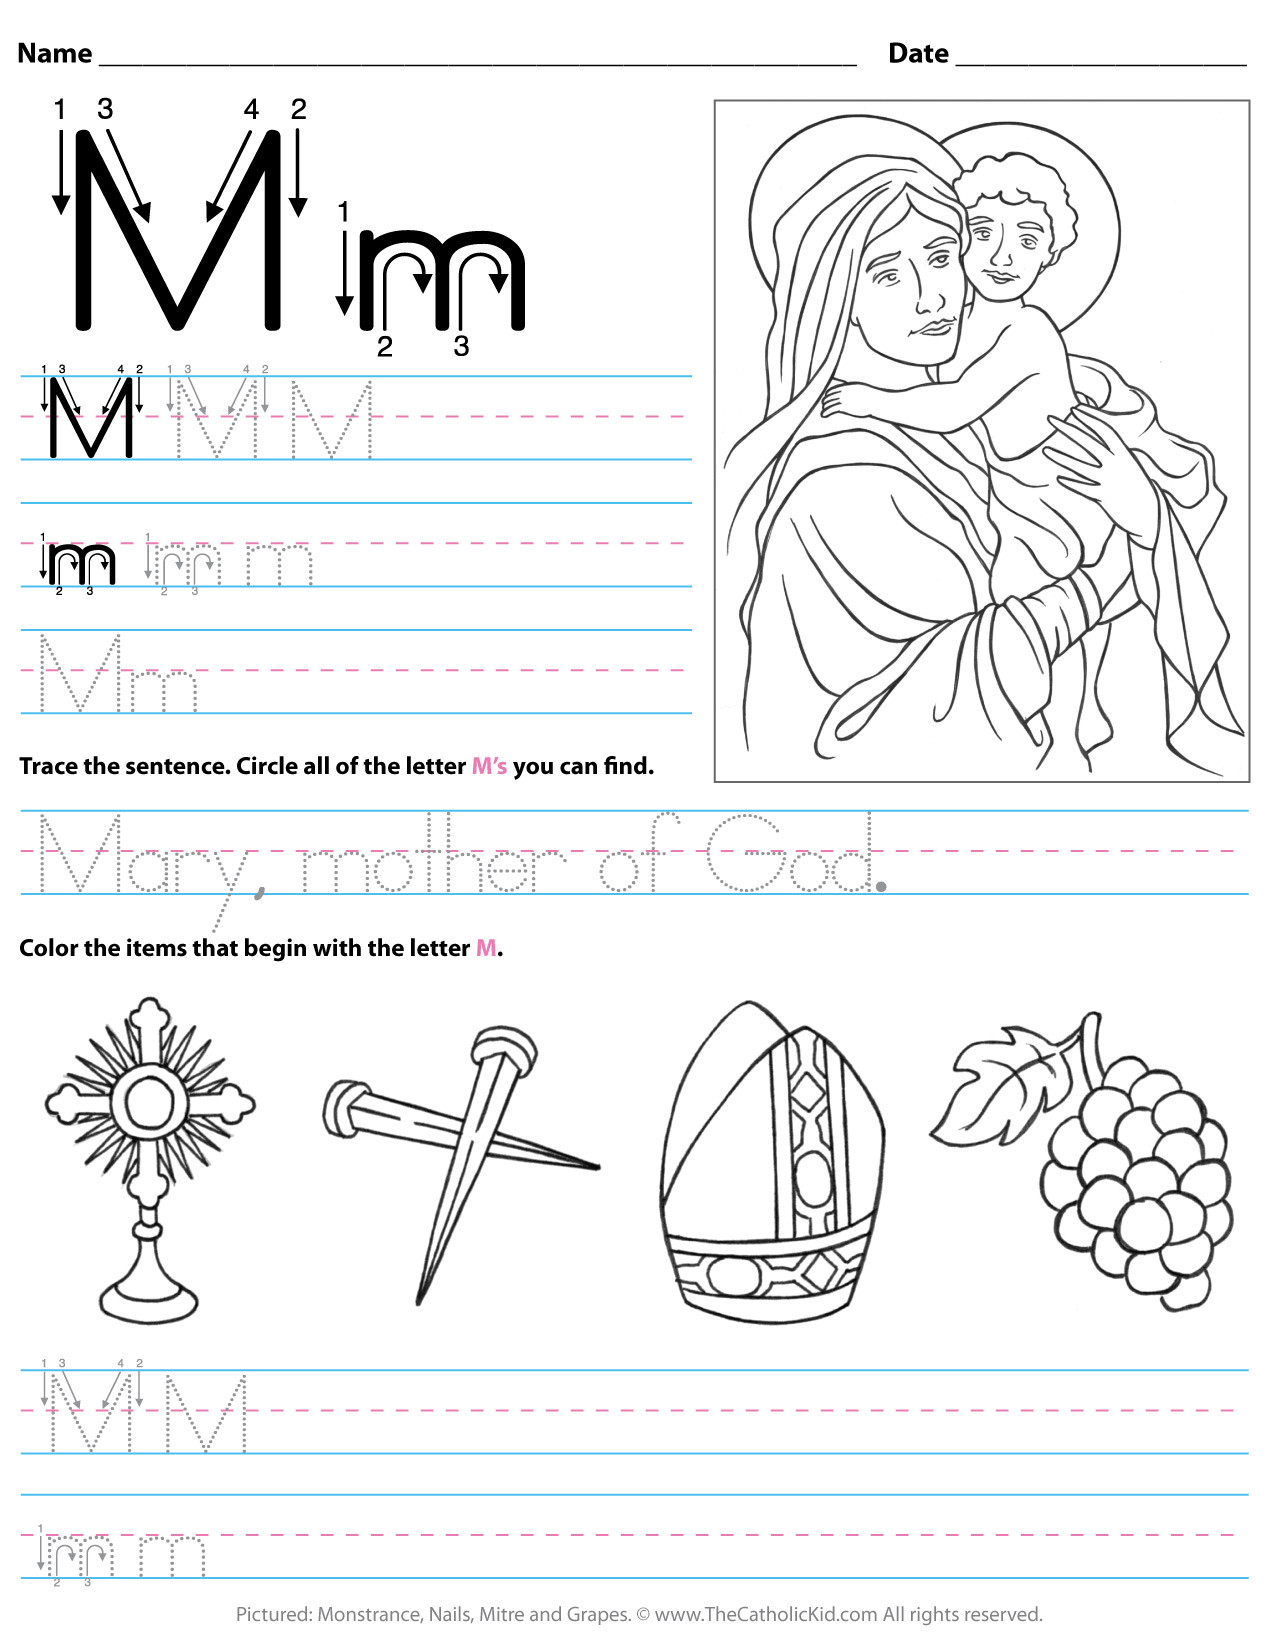 Letter M Worksheets Preschool Catholic Alphabet Letter M Worksheet Preschool Kindergarten